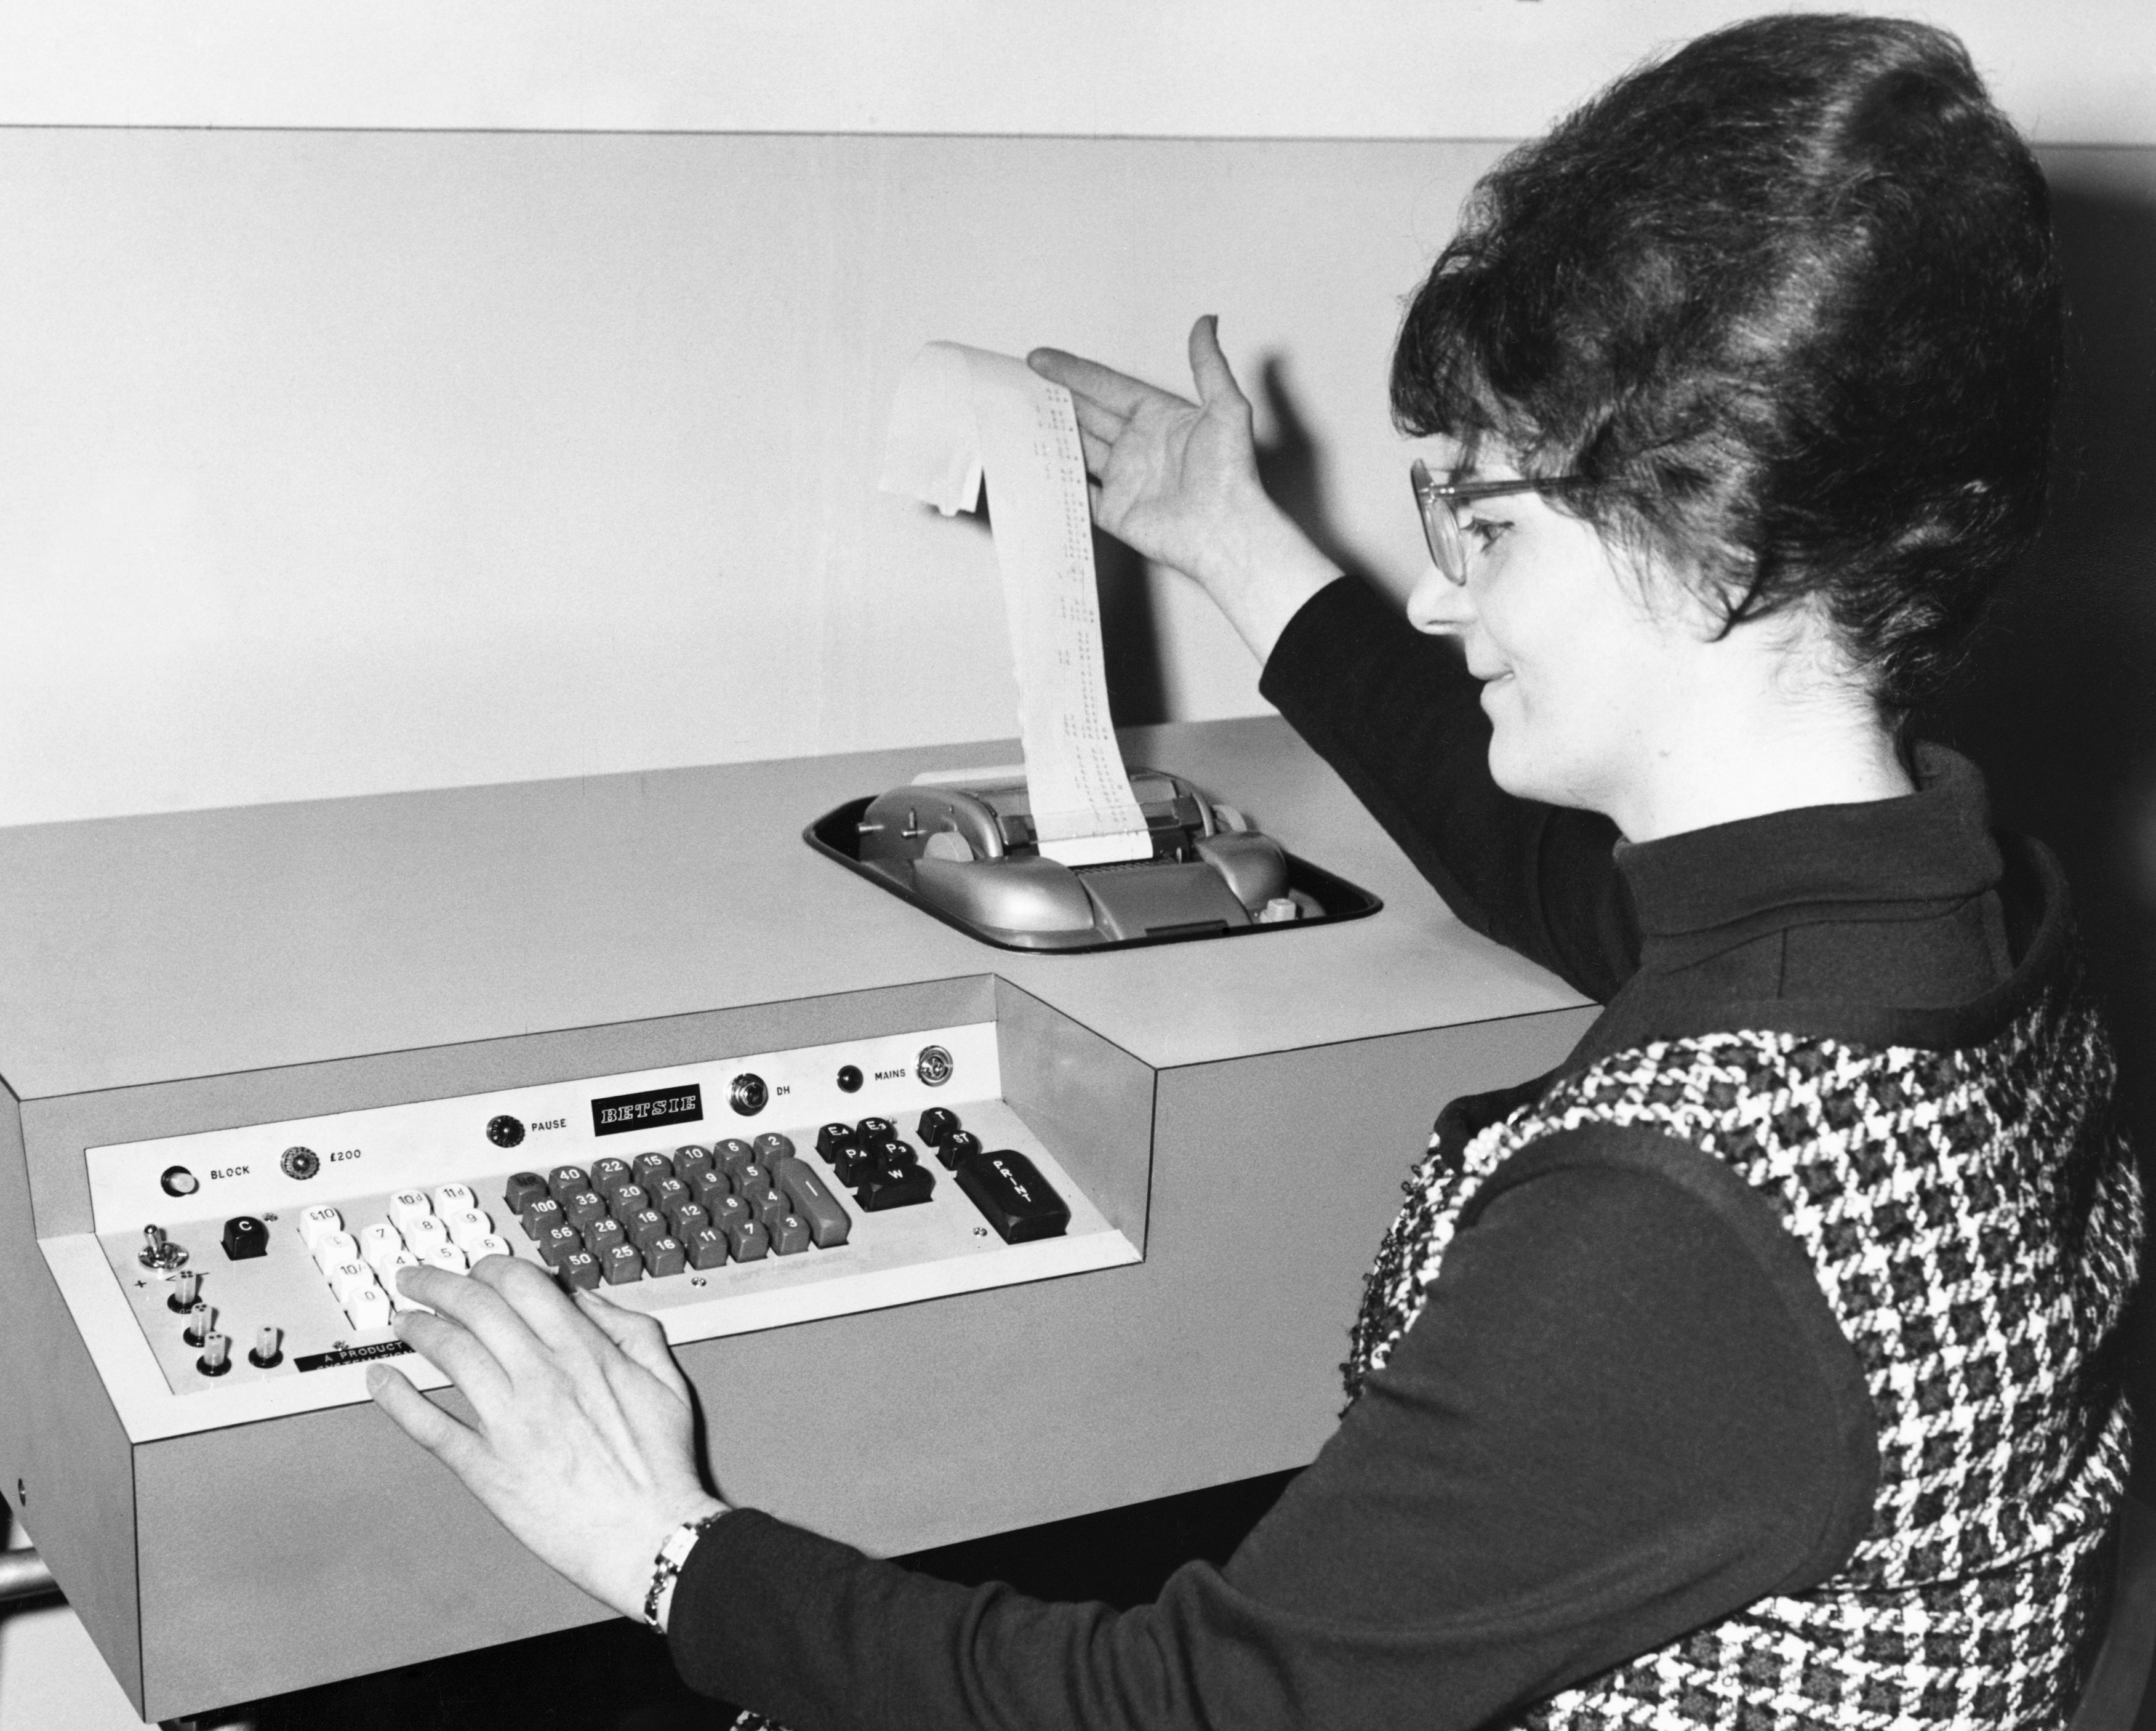 A female computer programmer demonstrates a new computer in the 1960s.